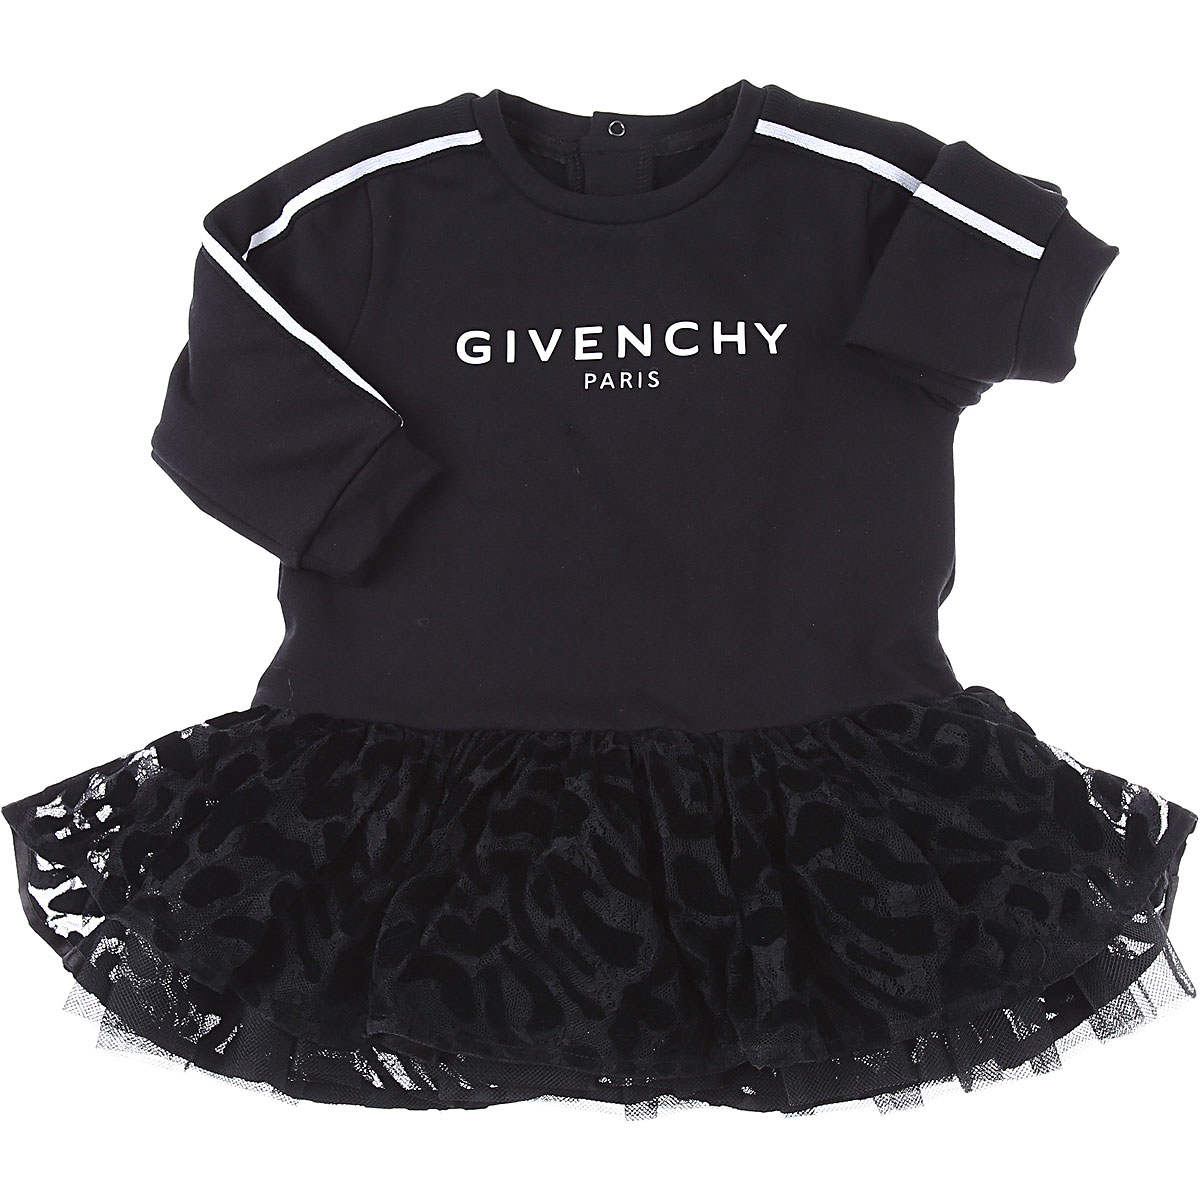 Givenchy Baby Dress for Girls On Sale, Black, Cotton, 2019, 12M 18M 2Y 9M